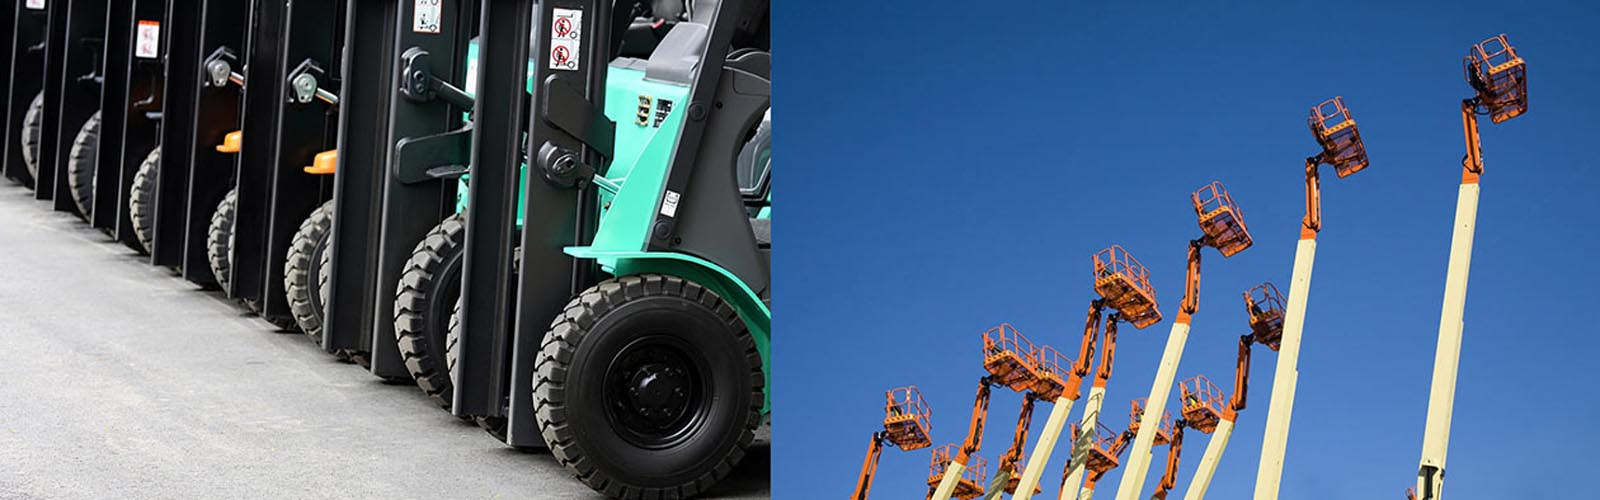 Kensar used forklifts and aerial lifts give you affordable